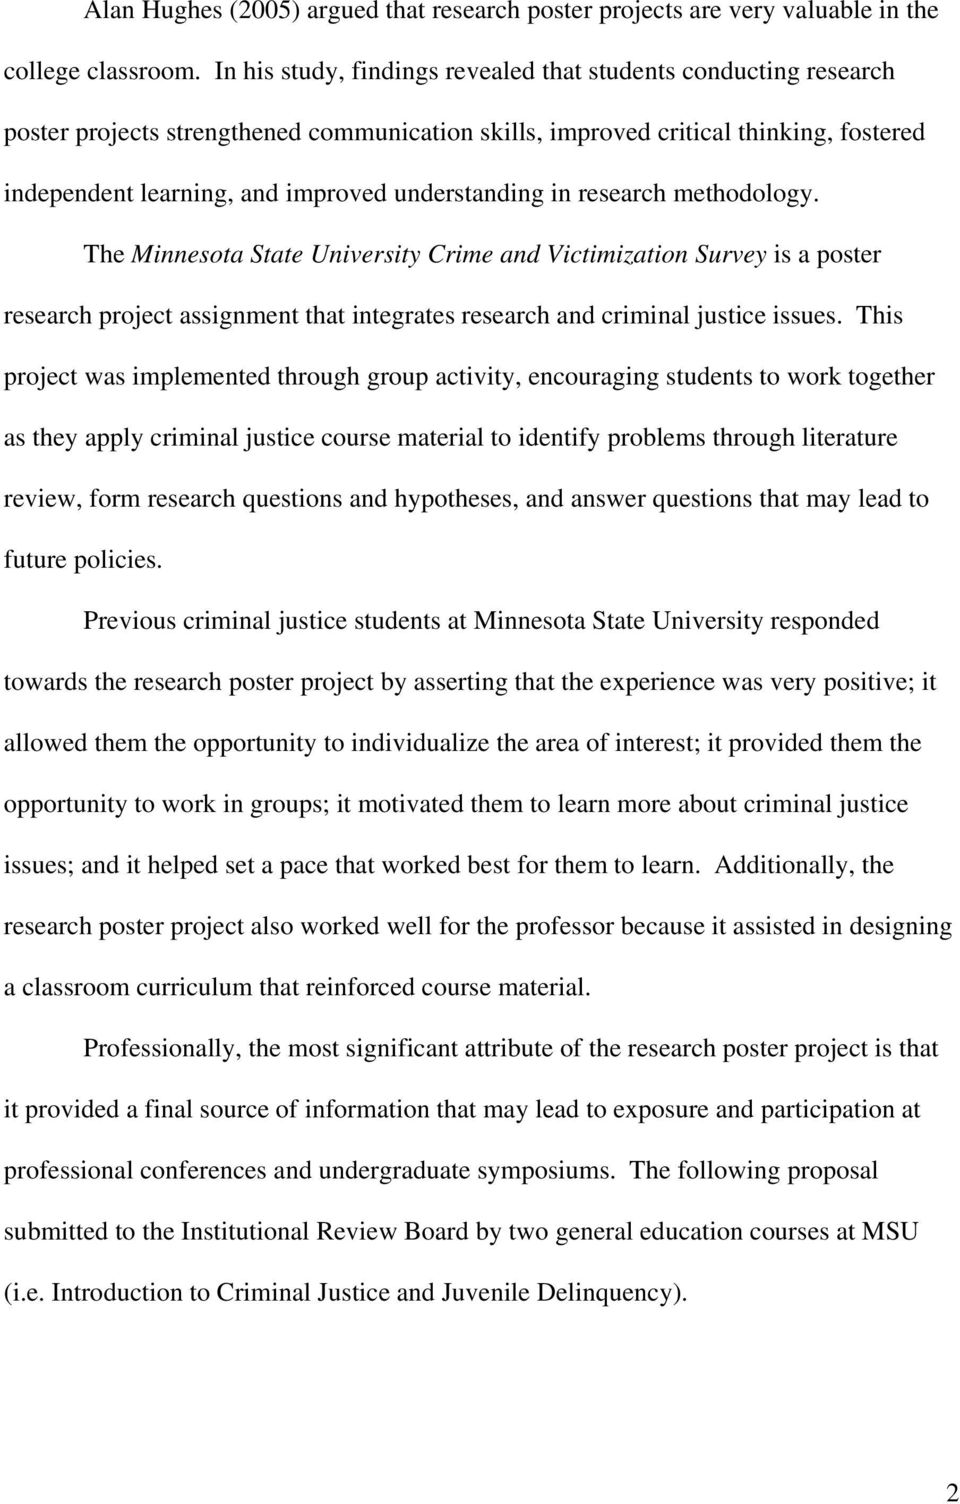 understanding in research methodology. The Minnesota State University Crime and Victimization Survey is a poster research project assignment that integrates research and criminal justice issues.